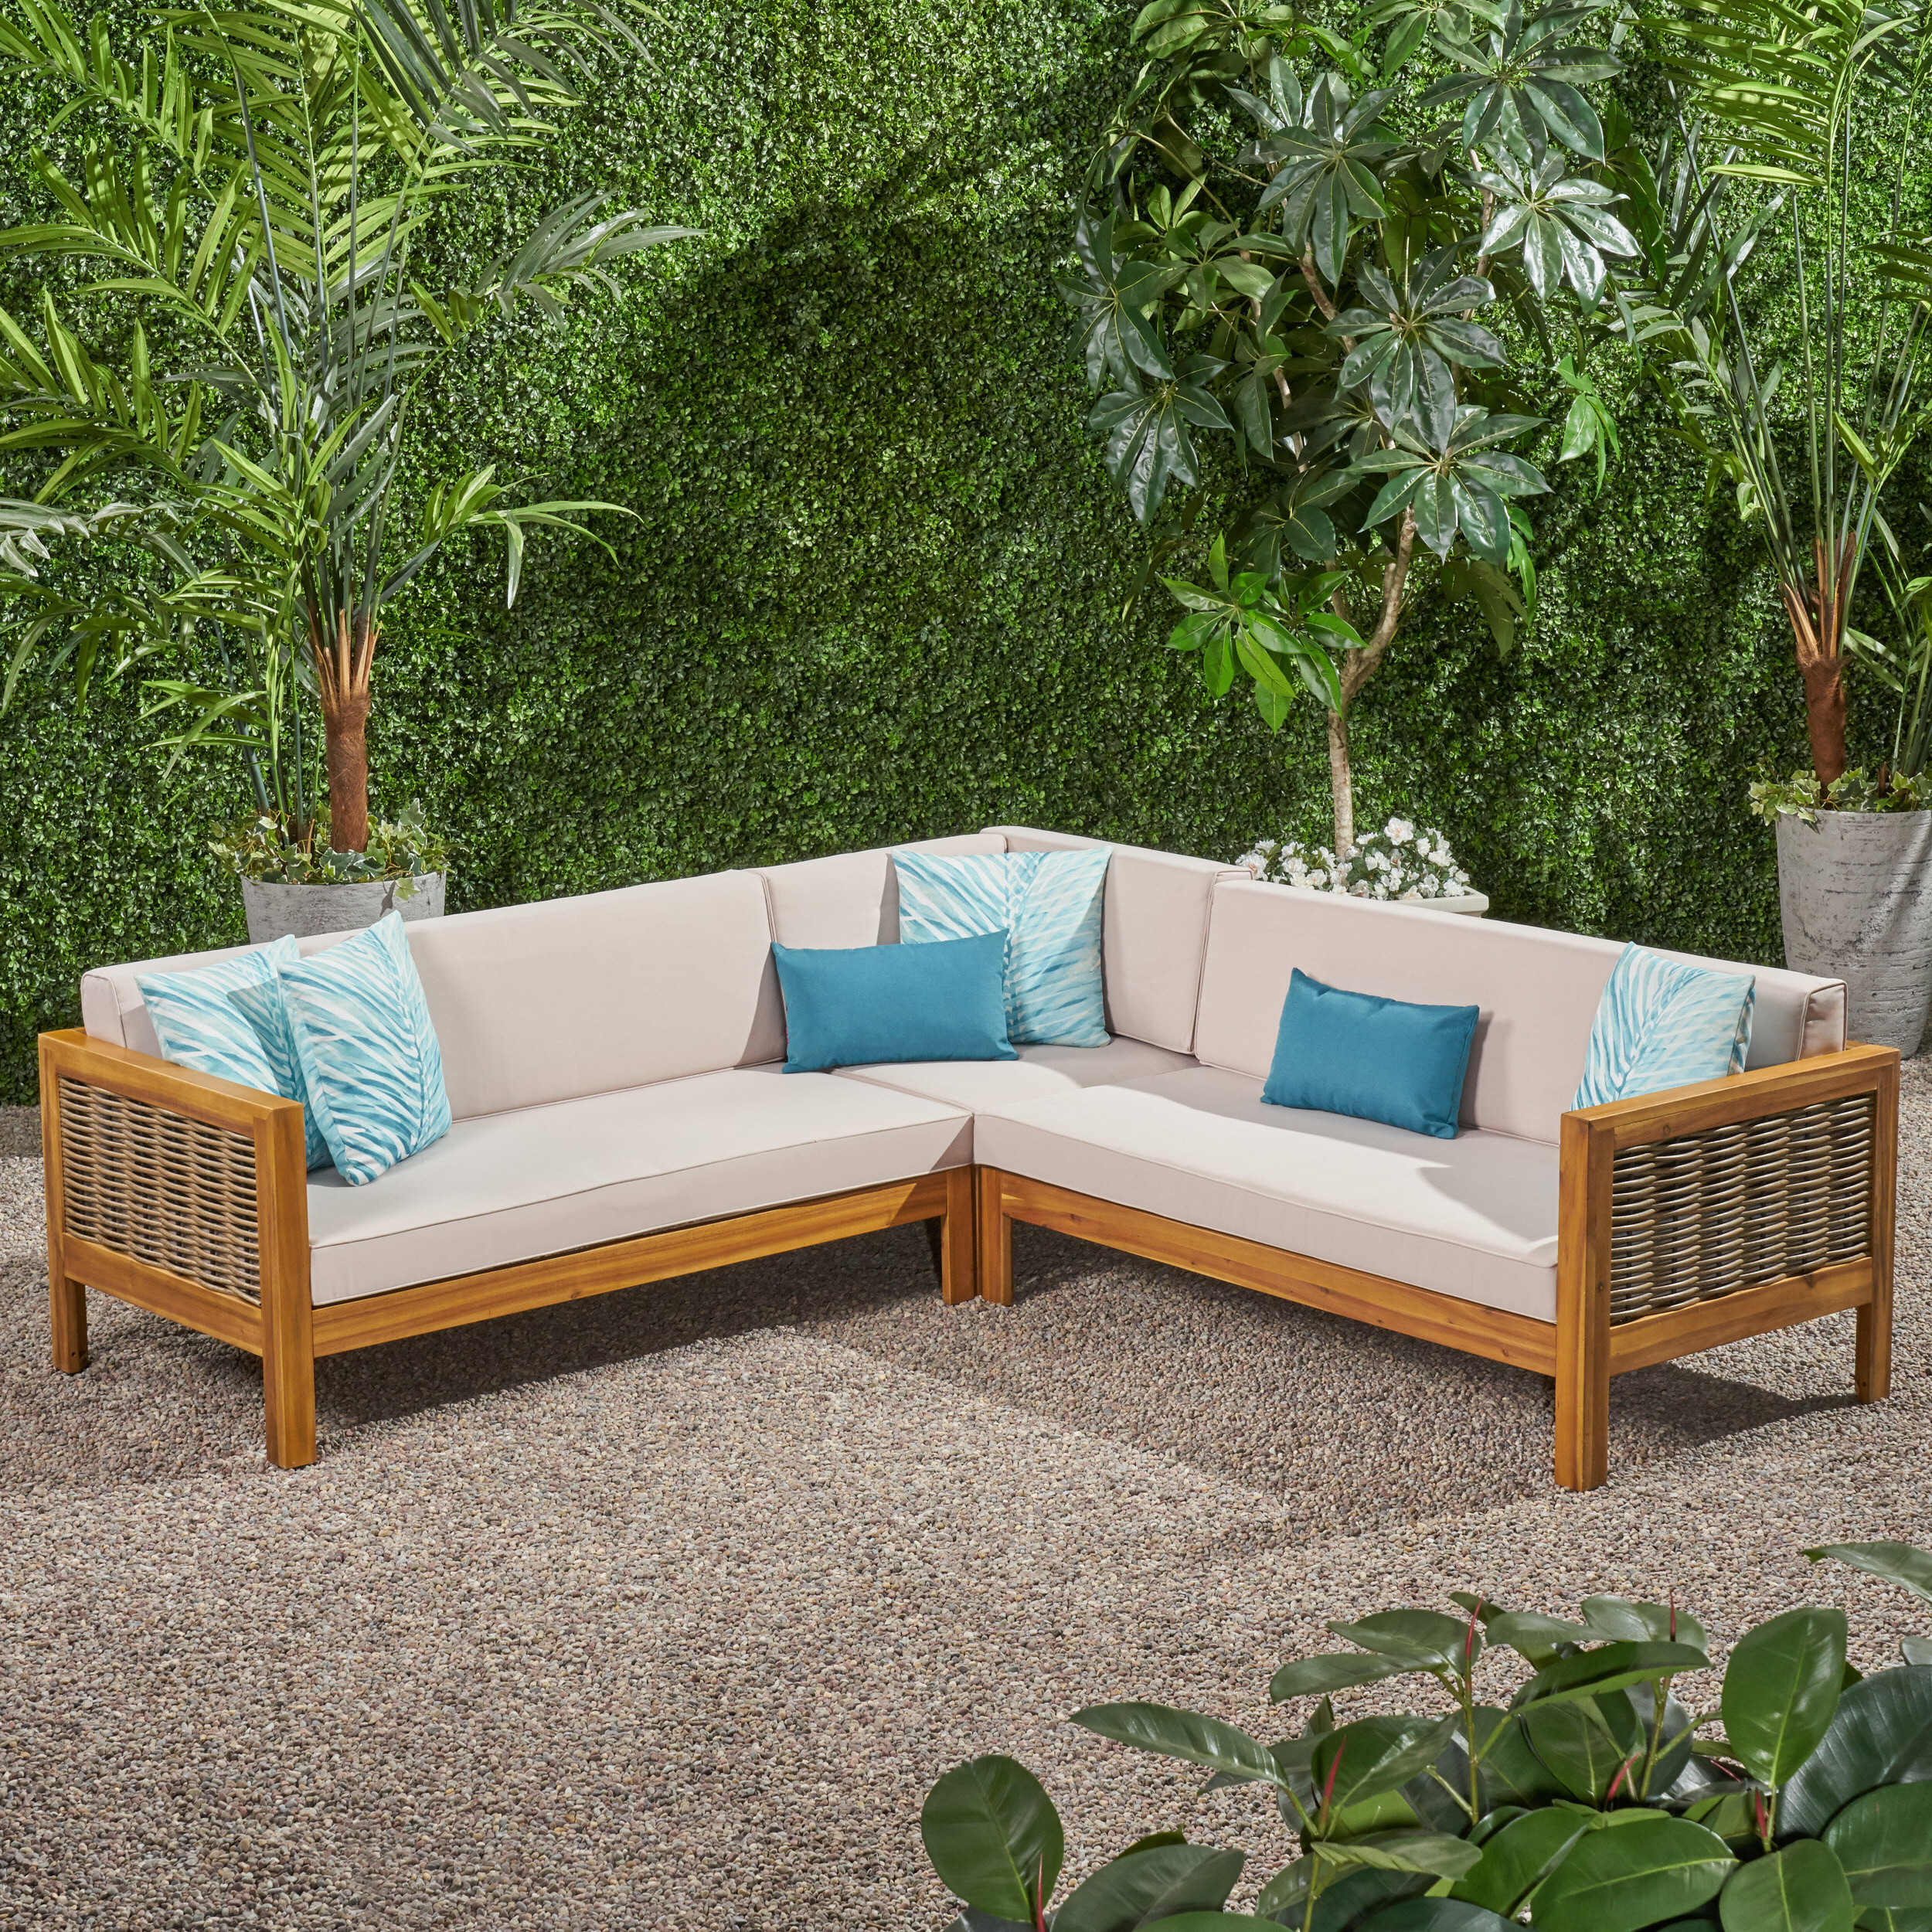 Well Liked Honeycutt Patio Sofas With Cushions In Kennison Patio Sectional With Cushions (View 18 of 25)